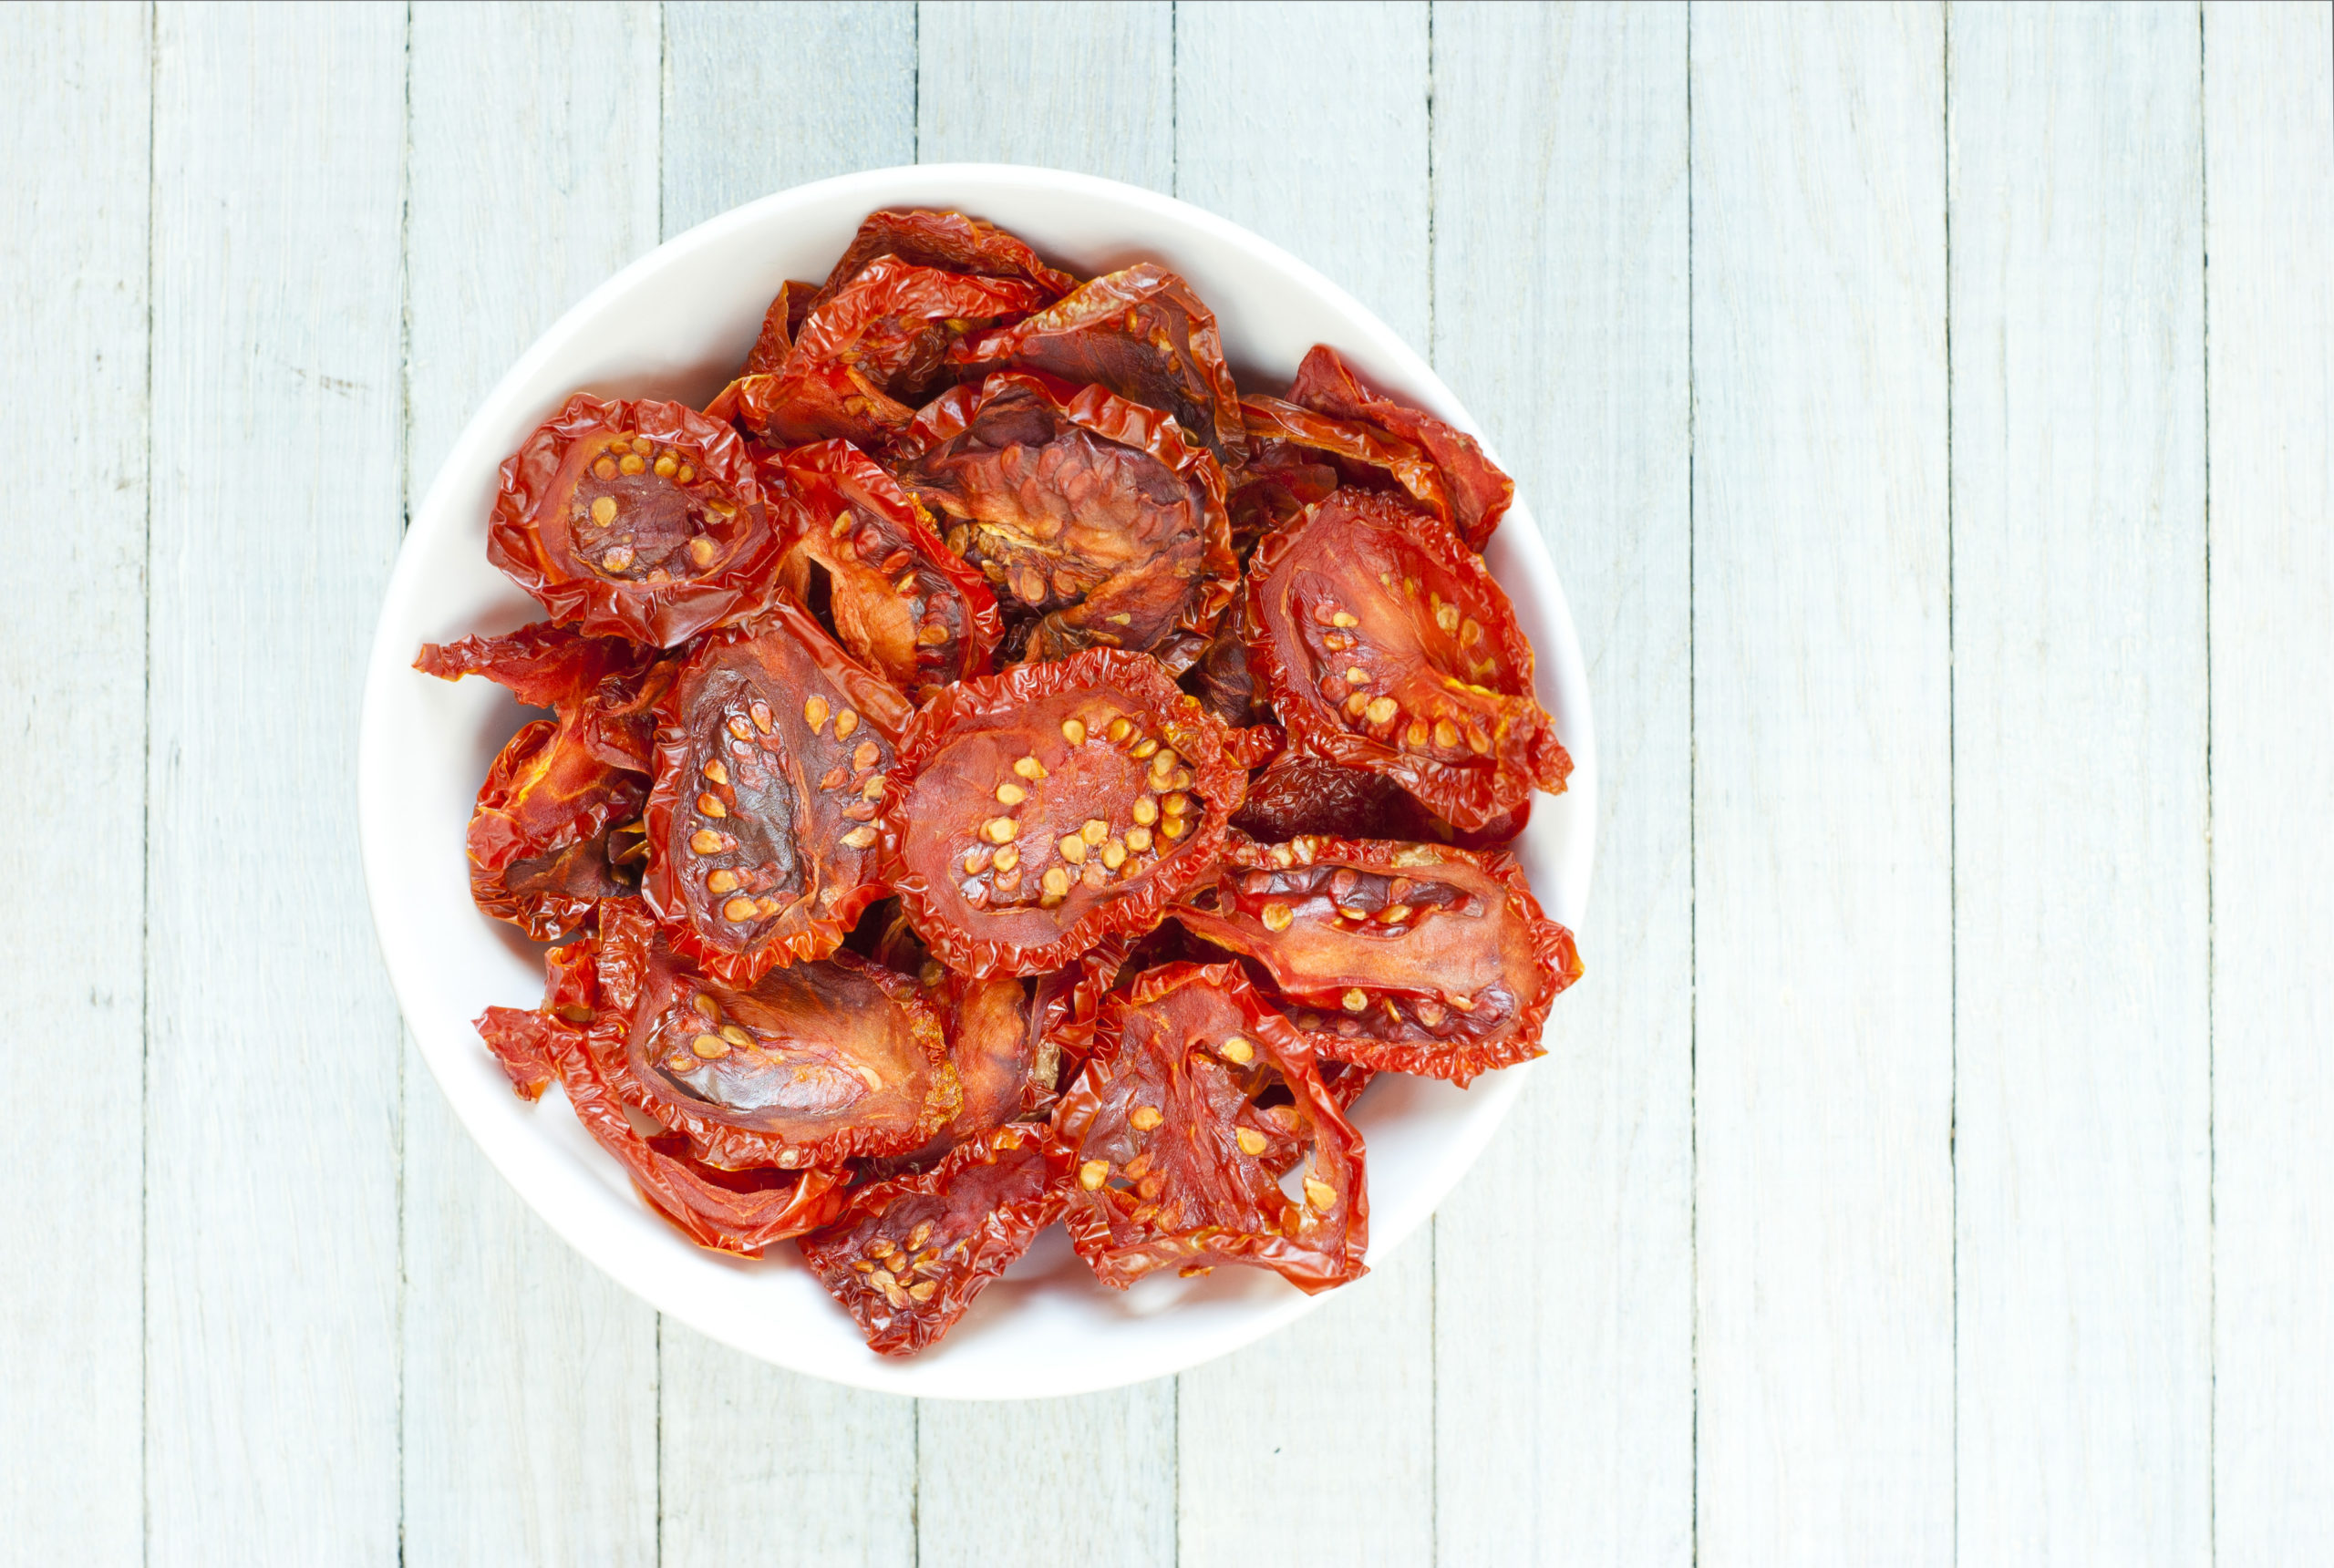 Substitute for Sun-Dried Tomatoes